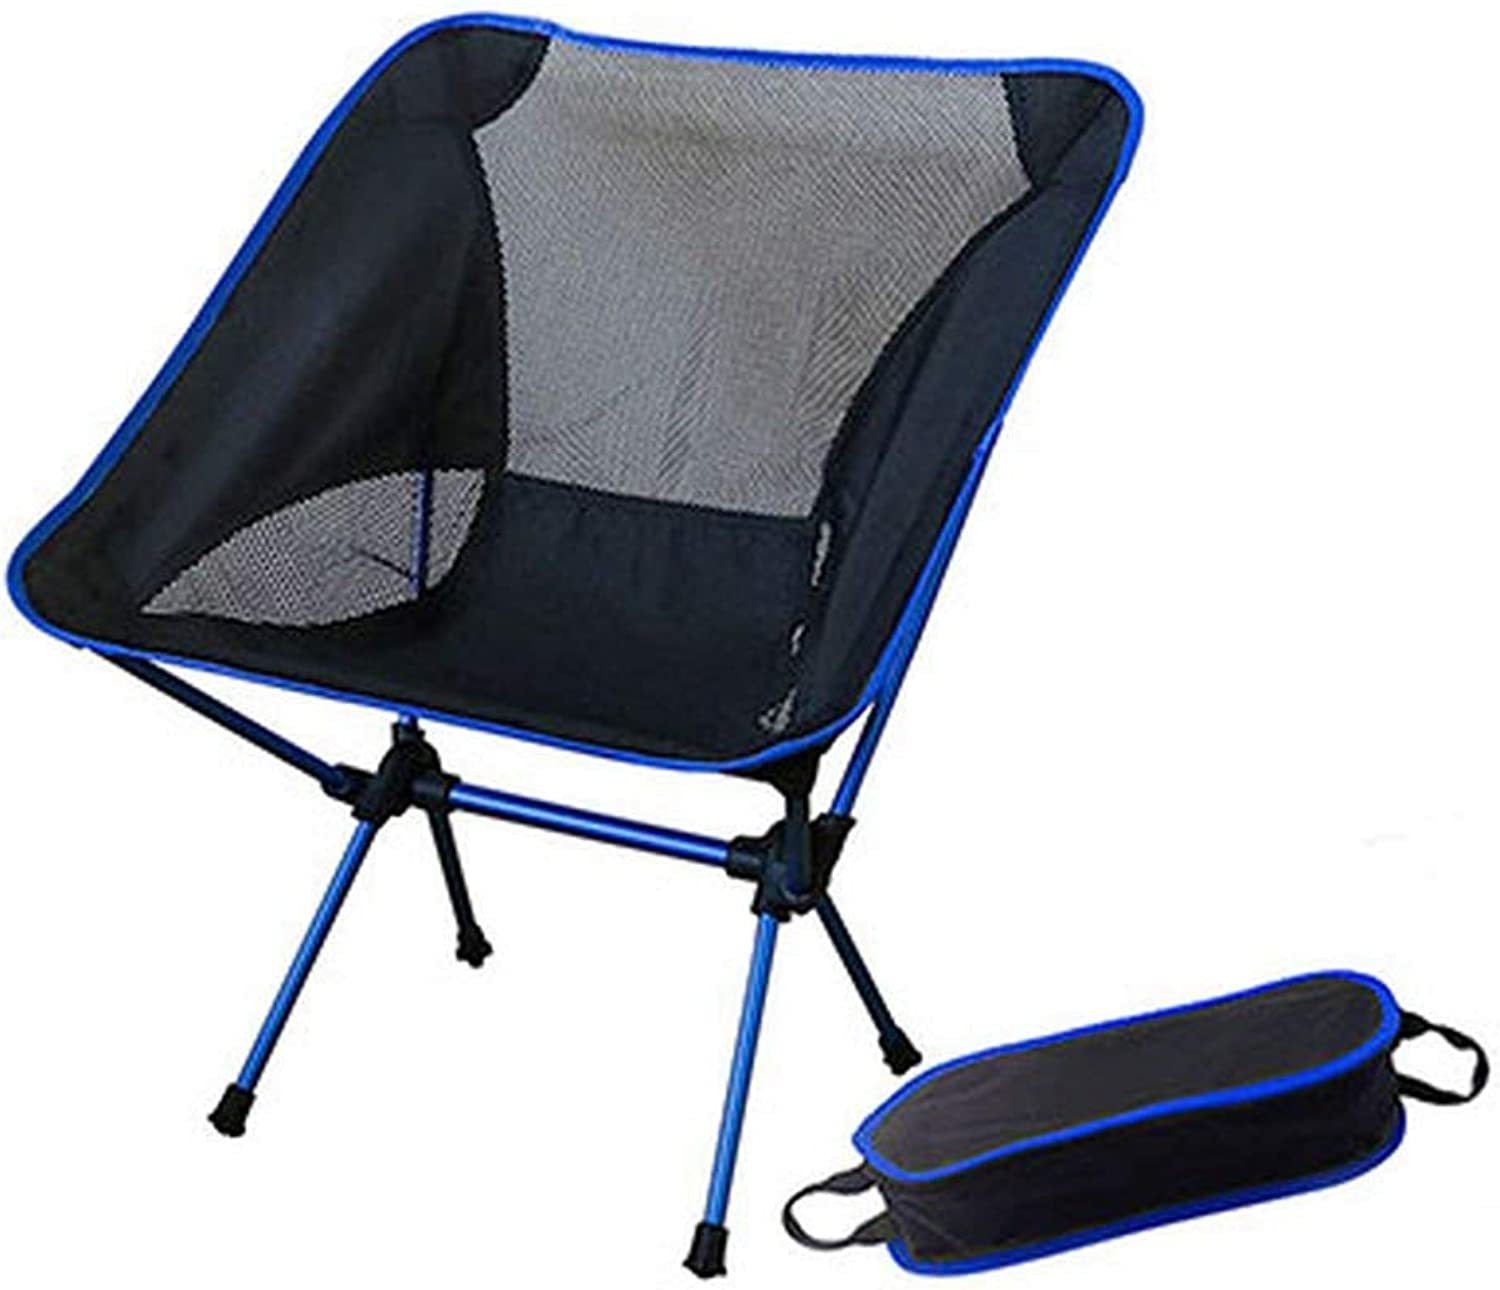 Folding Chair Ultralight Moon Chairs Portable Garden Al Chair Fishing The Director Seat Camping Removable Folding Furniture Indian Armchair,Sf73300Db